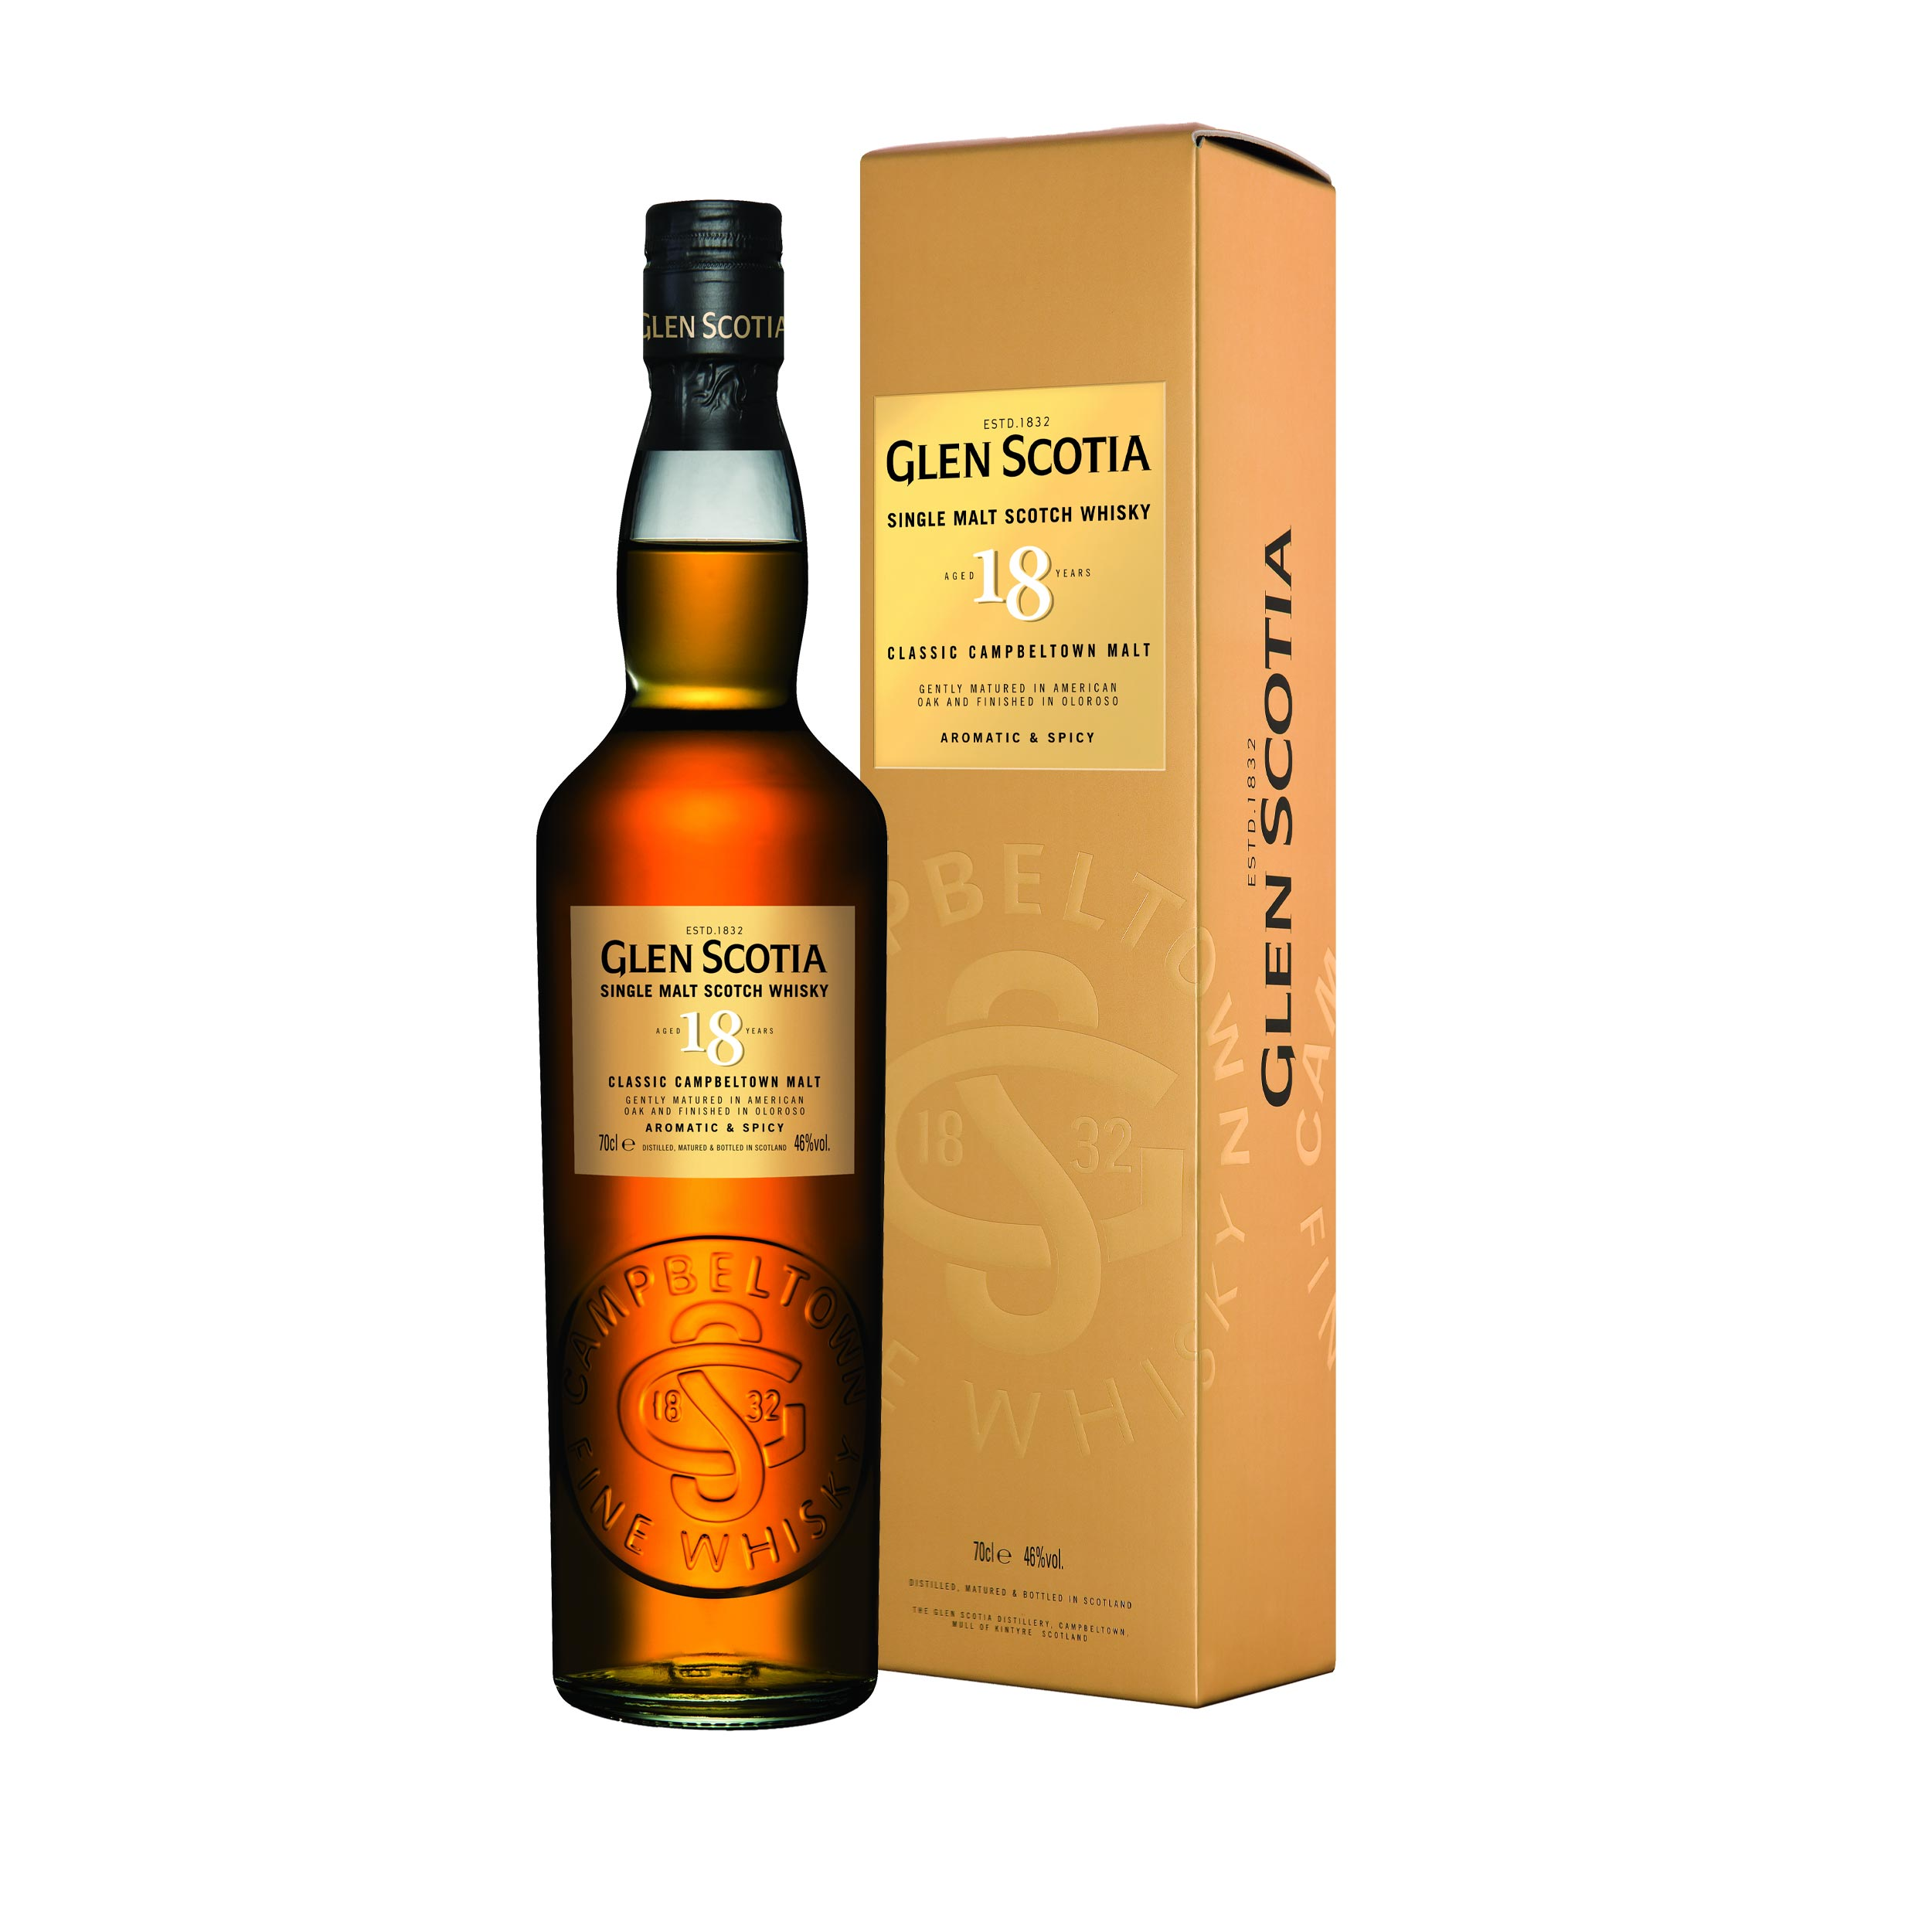 Glen Scotia 18 Year Old Campbeltown Single Malt Scotch Whisky 70cl